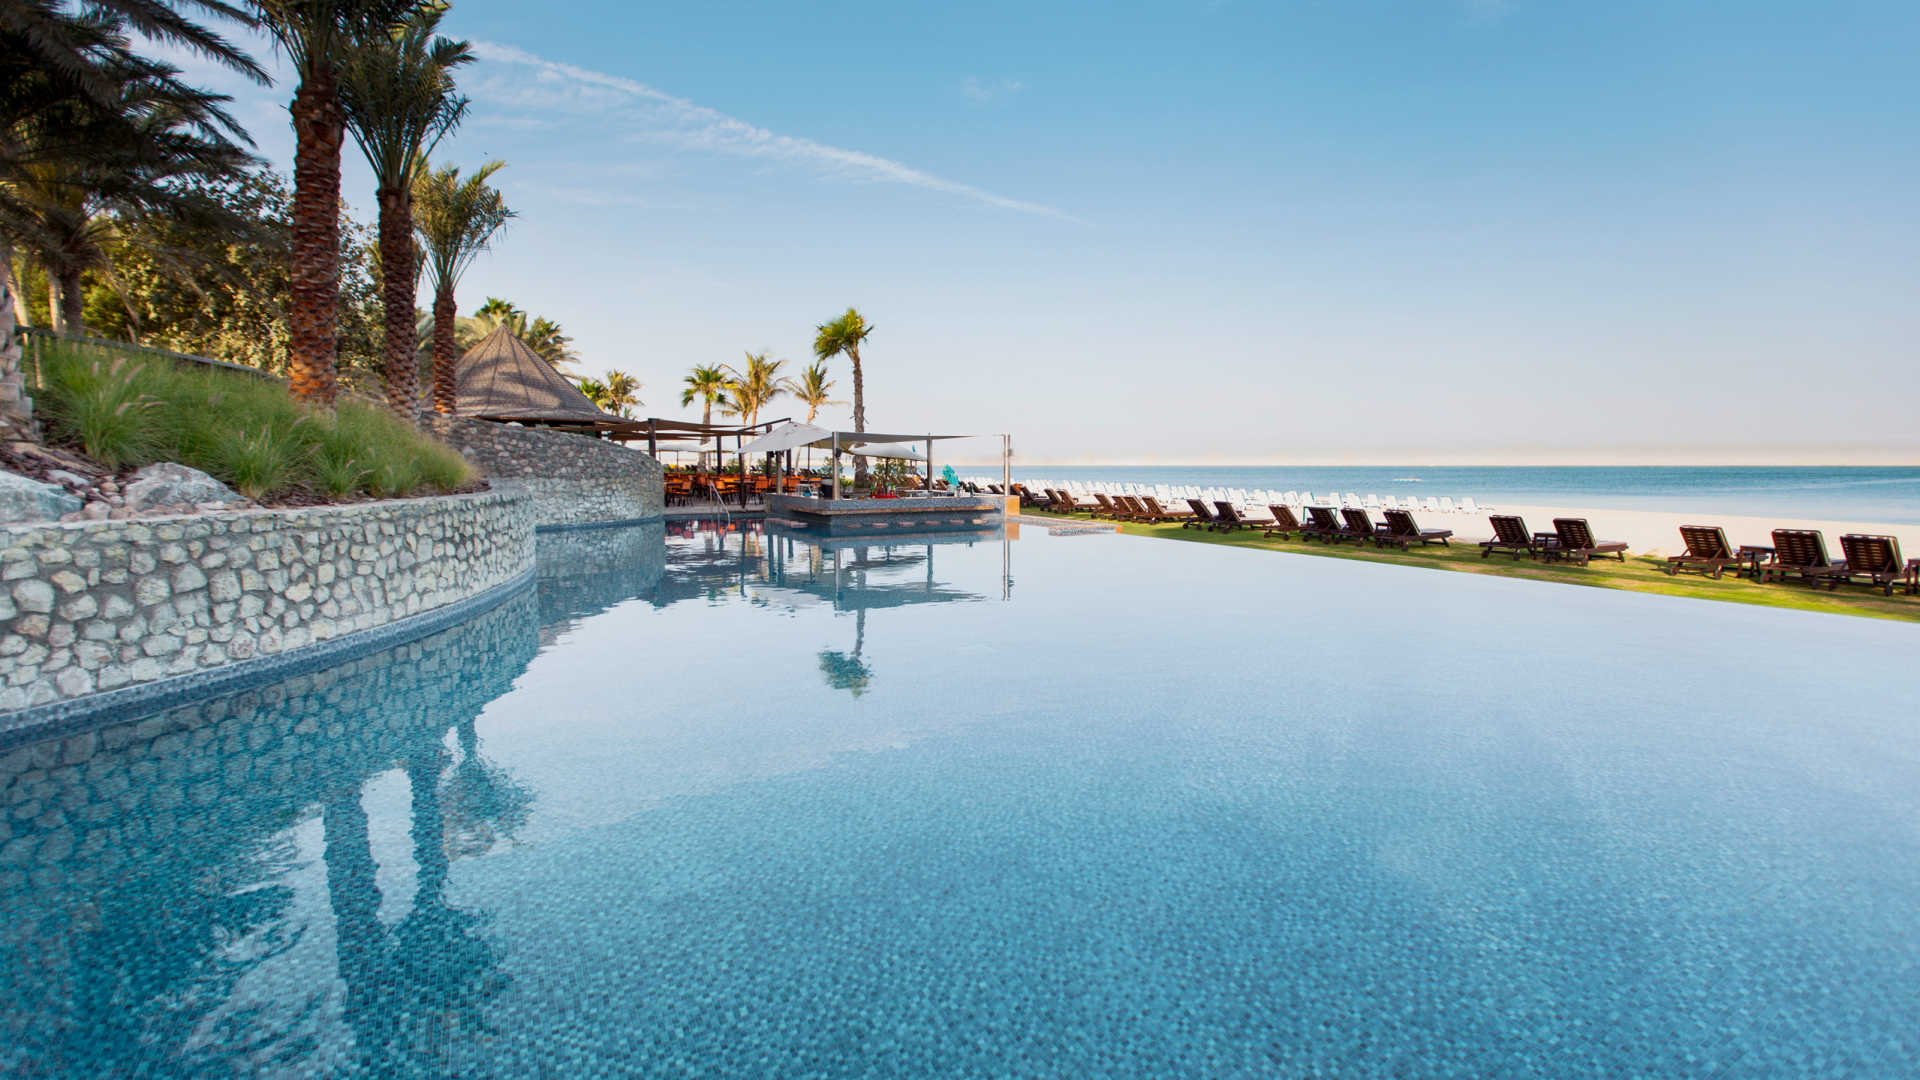 Ja jebel ali beach hotel dubai travel guides for Dubai beach hotels